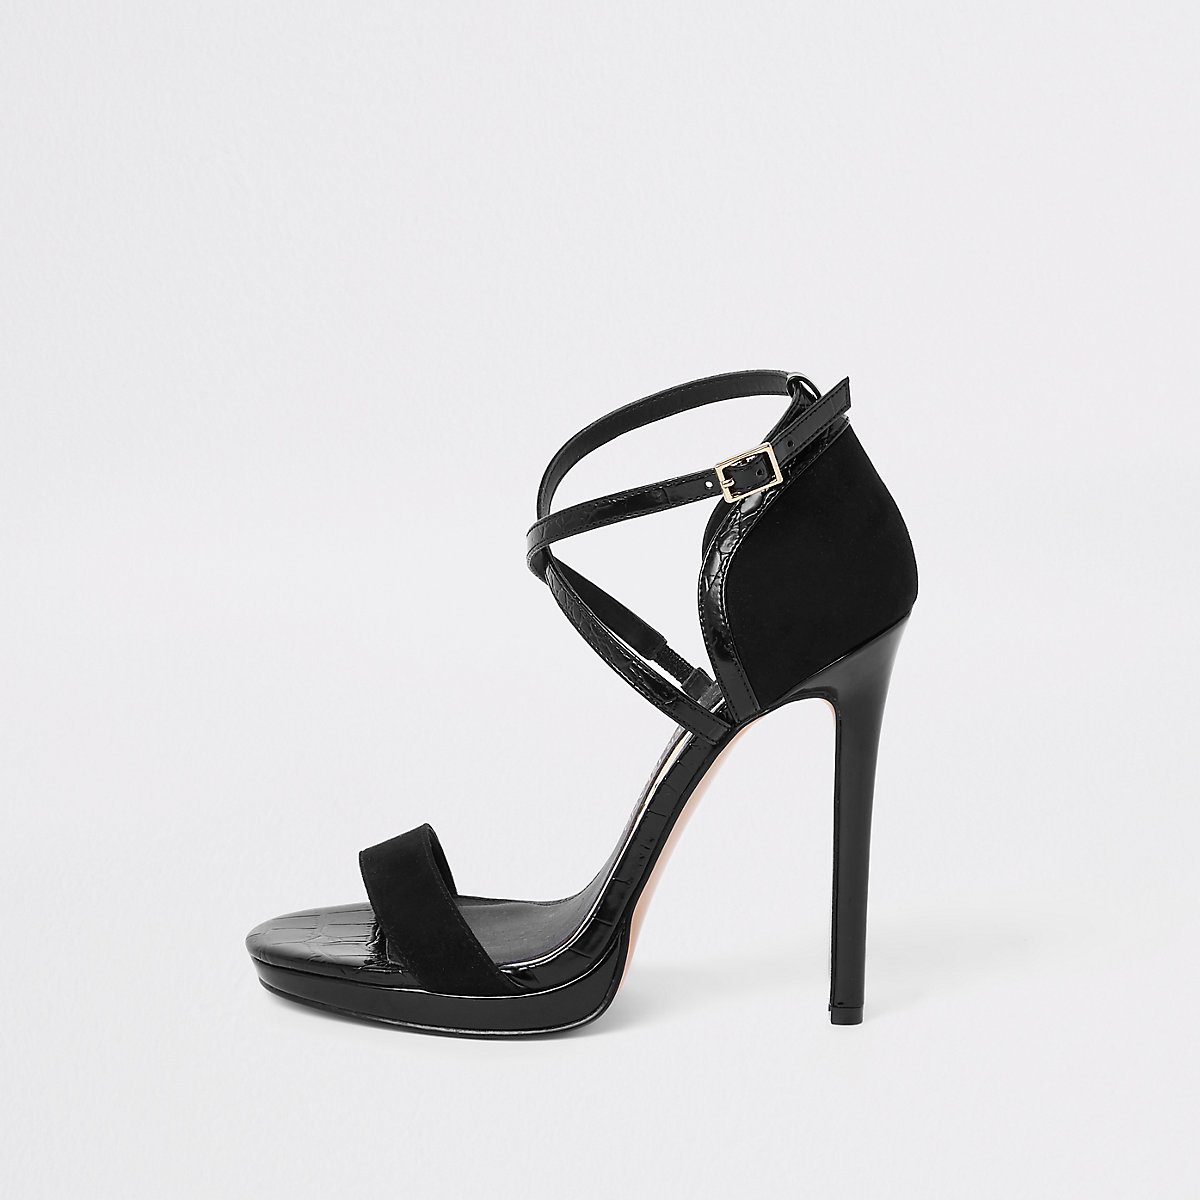 Black barely there platform sandals